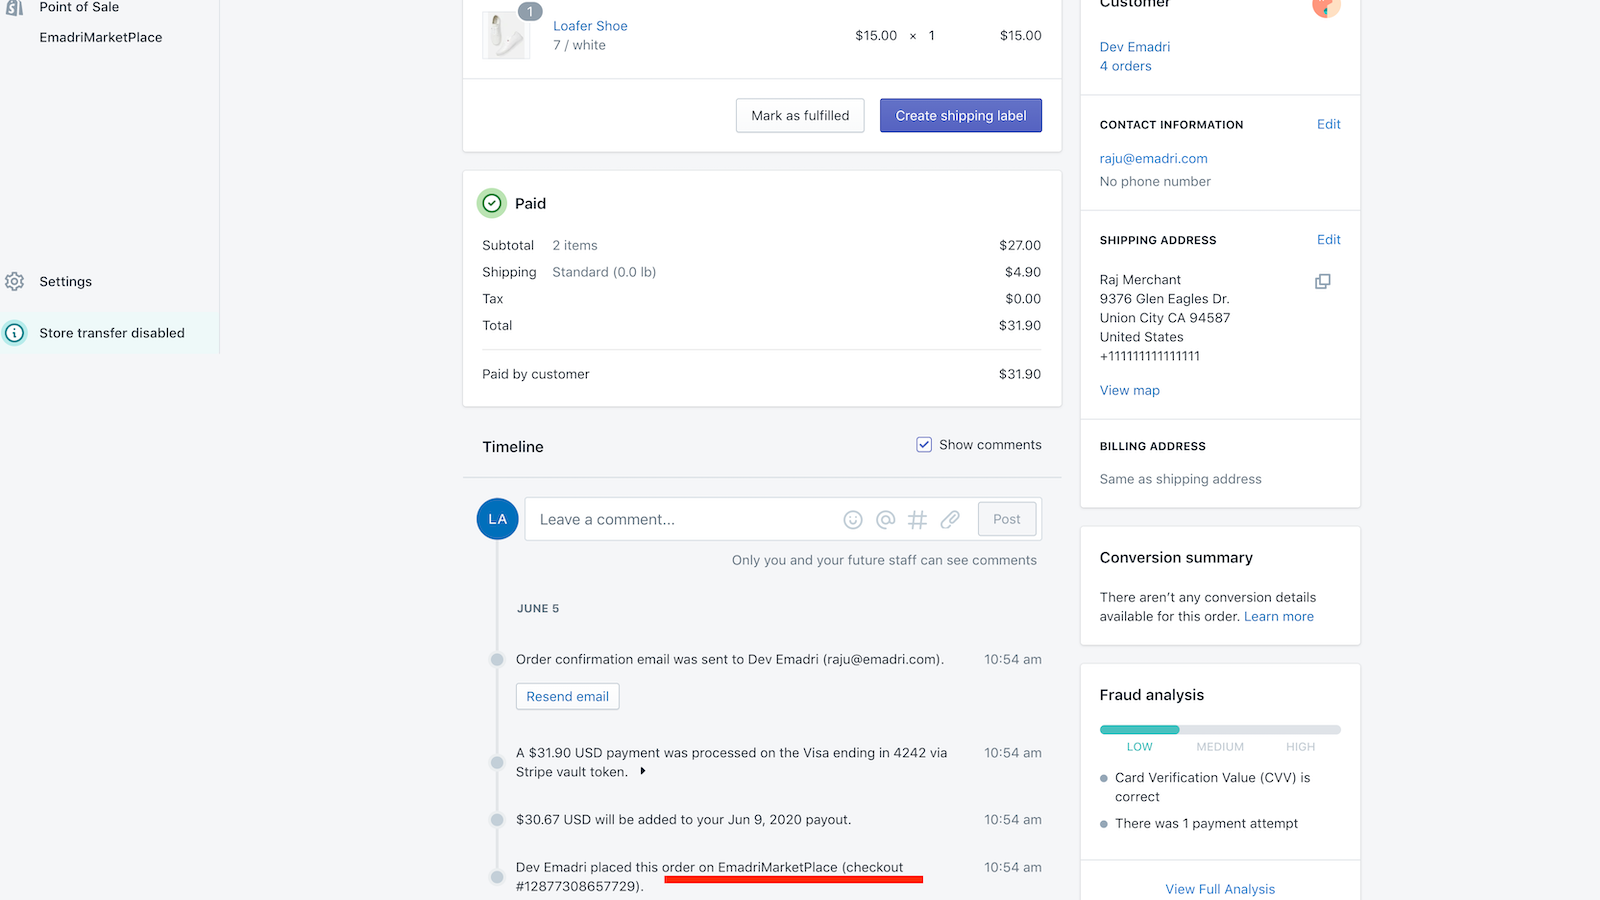 Shopify dashboard showing order from Emadri marketplace